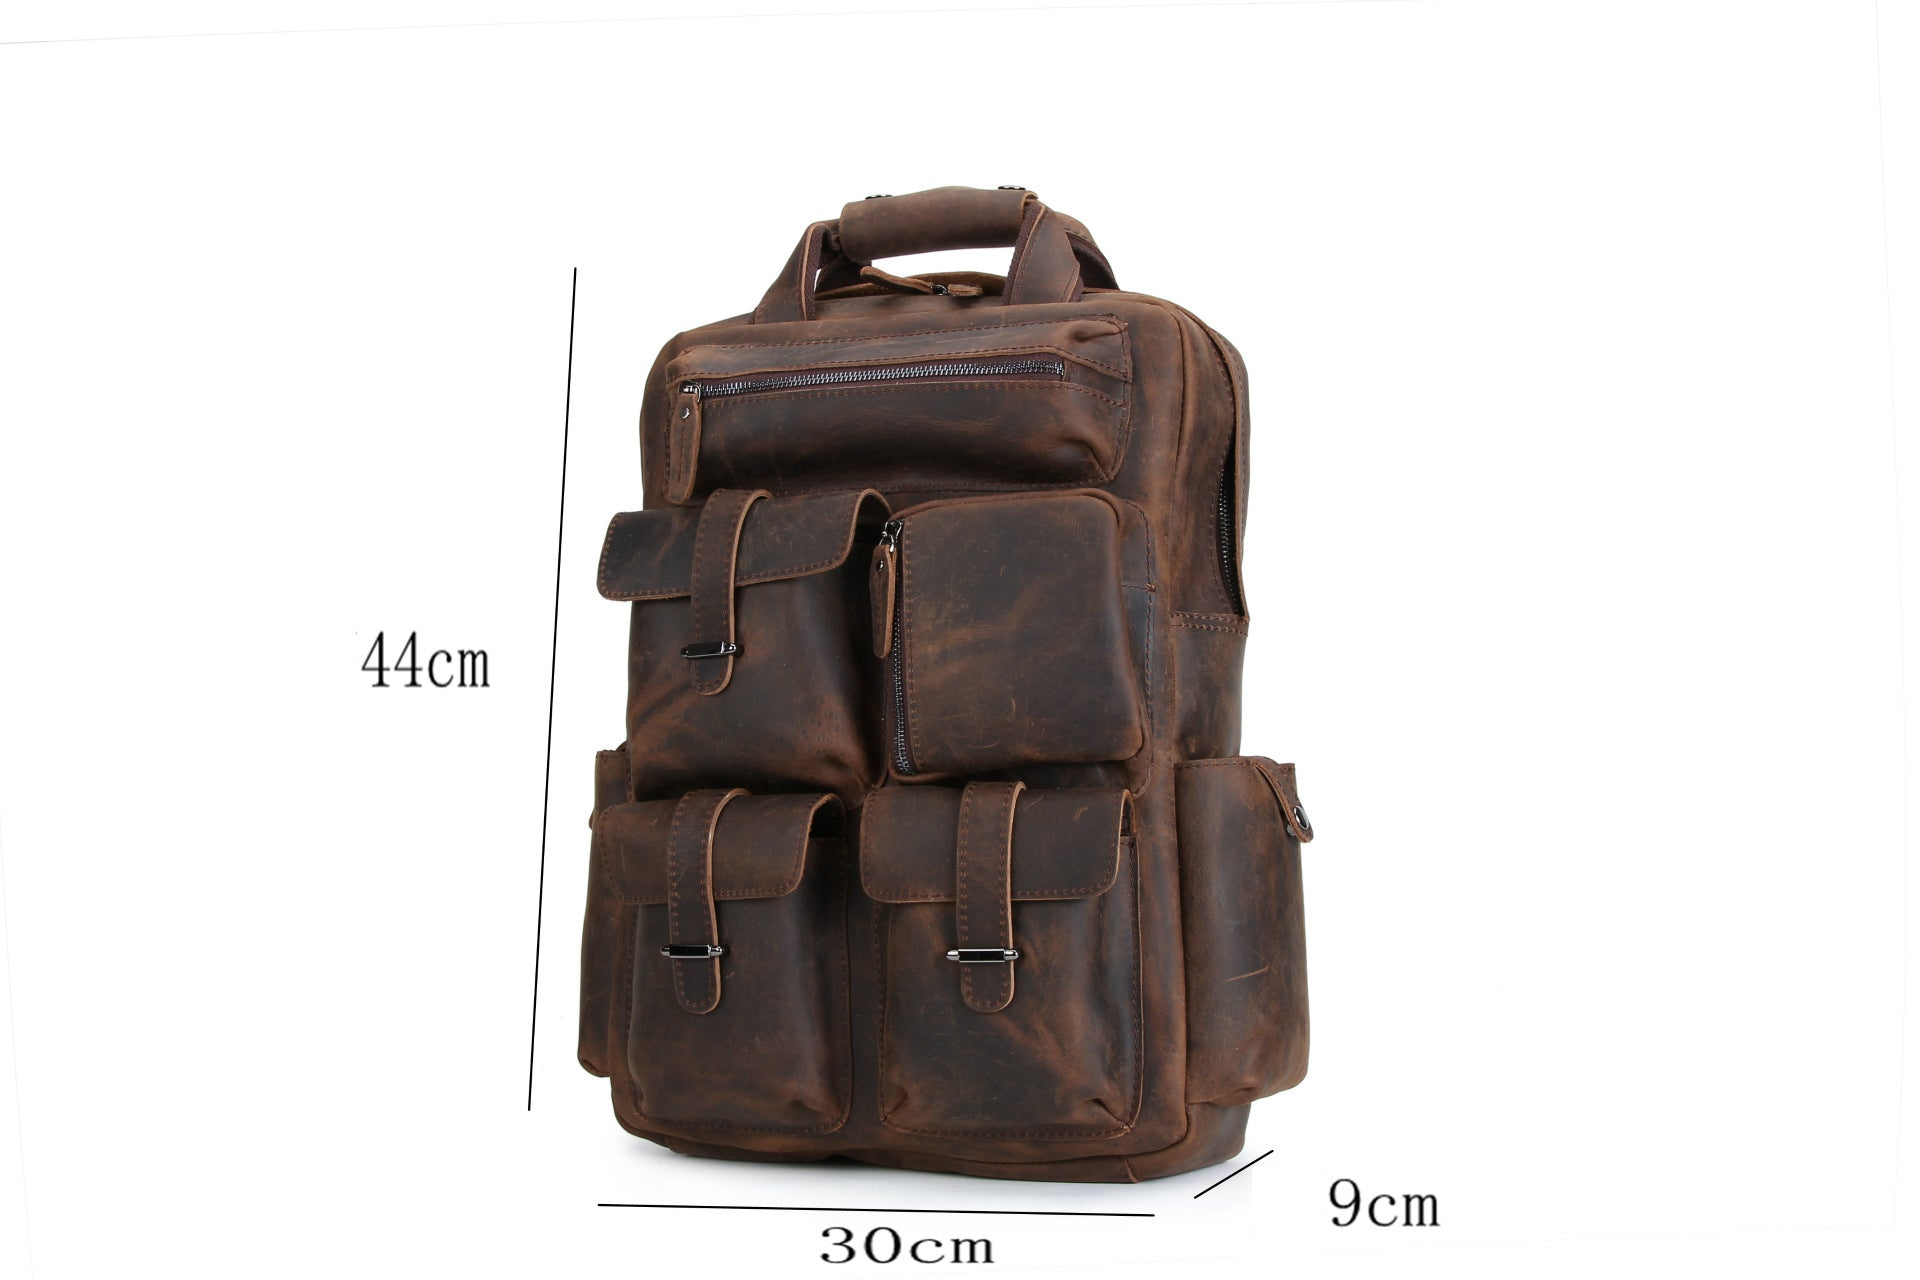 MAHEU Men's Leather Backpack Large Capacity Solf Original Cow Skin Leather Backpacks Functional Casual Packs For Man Cool Design - BestBagShop